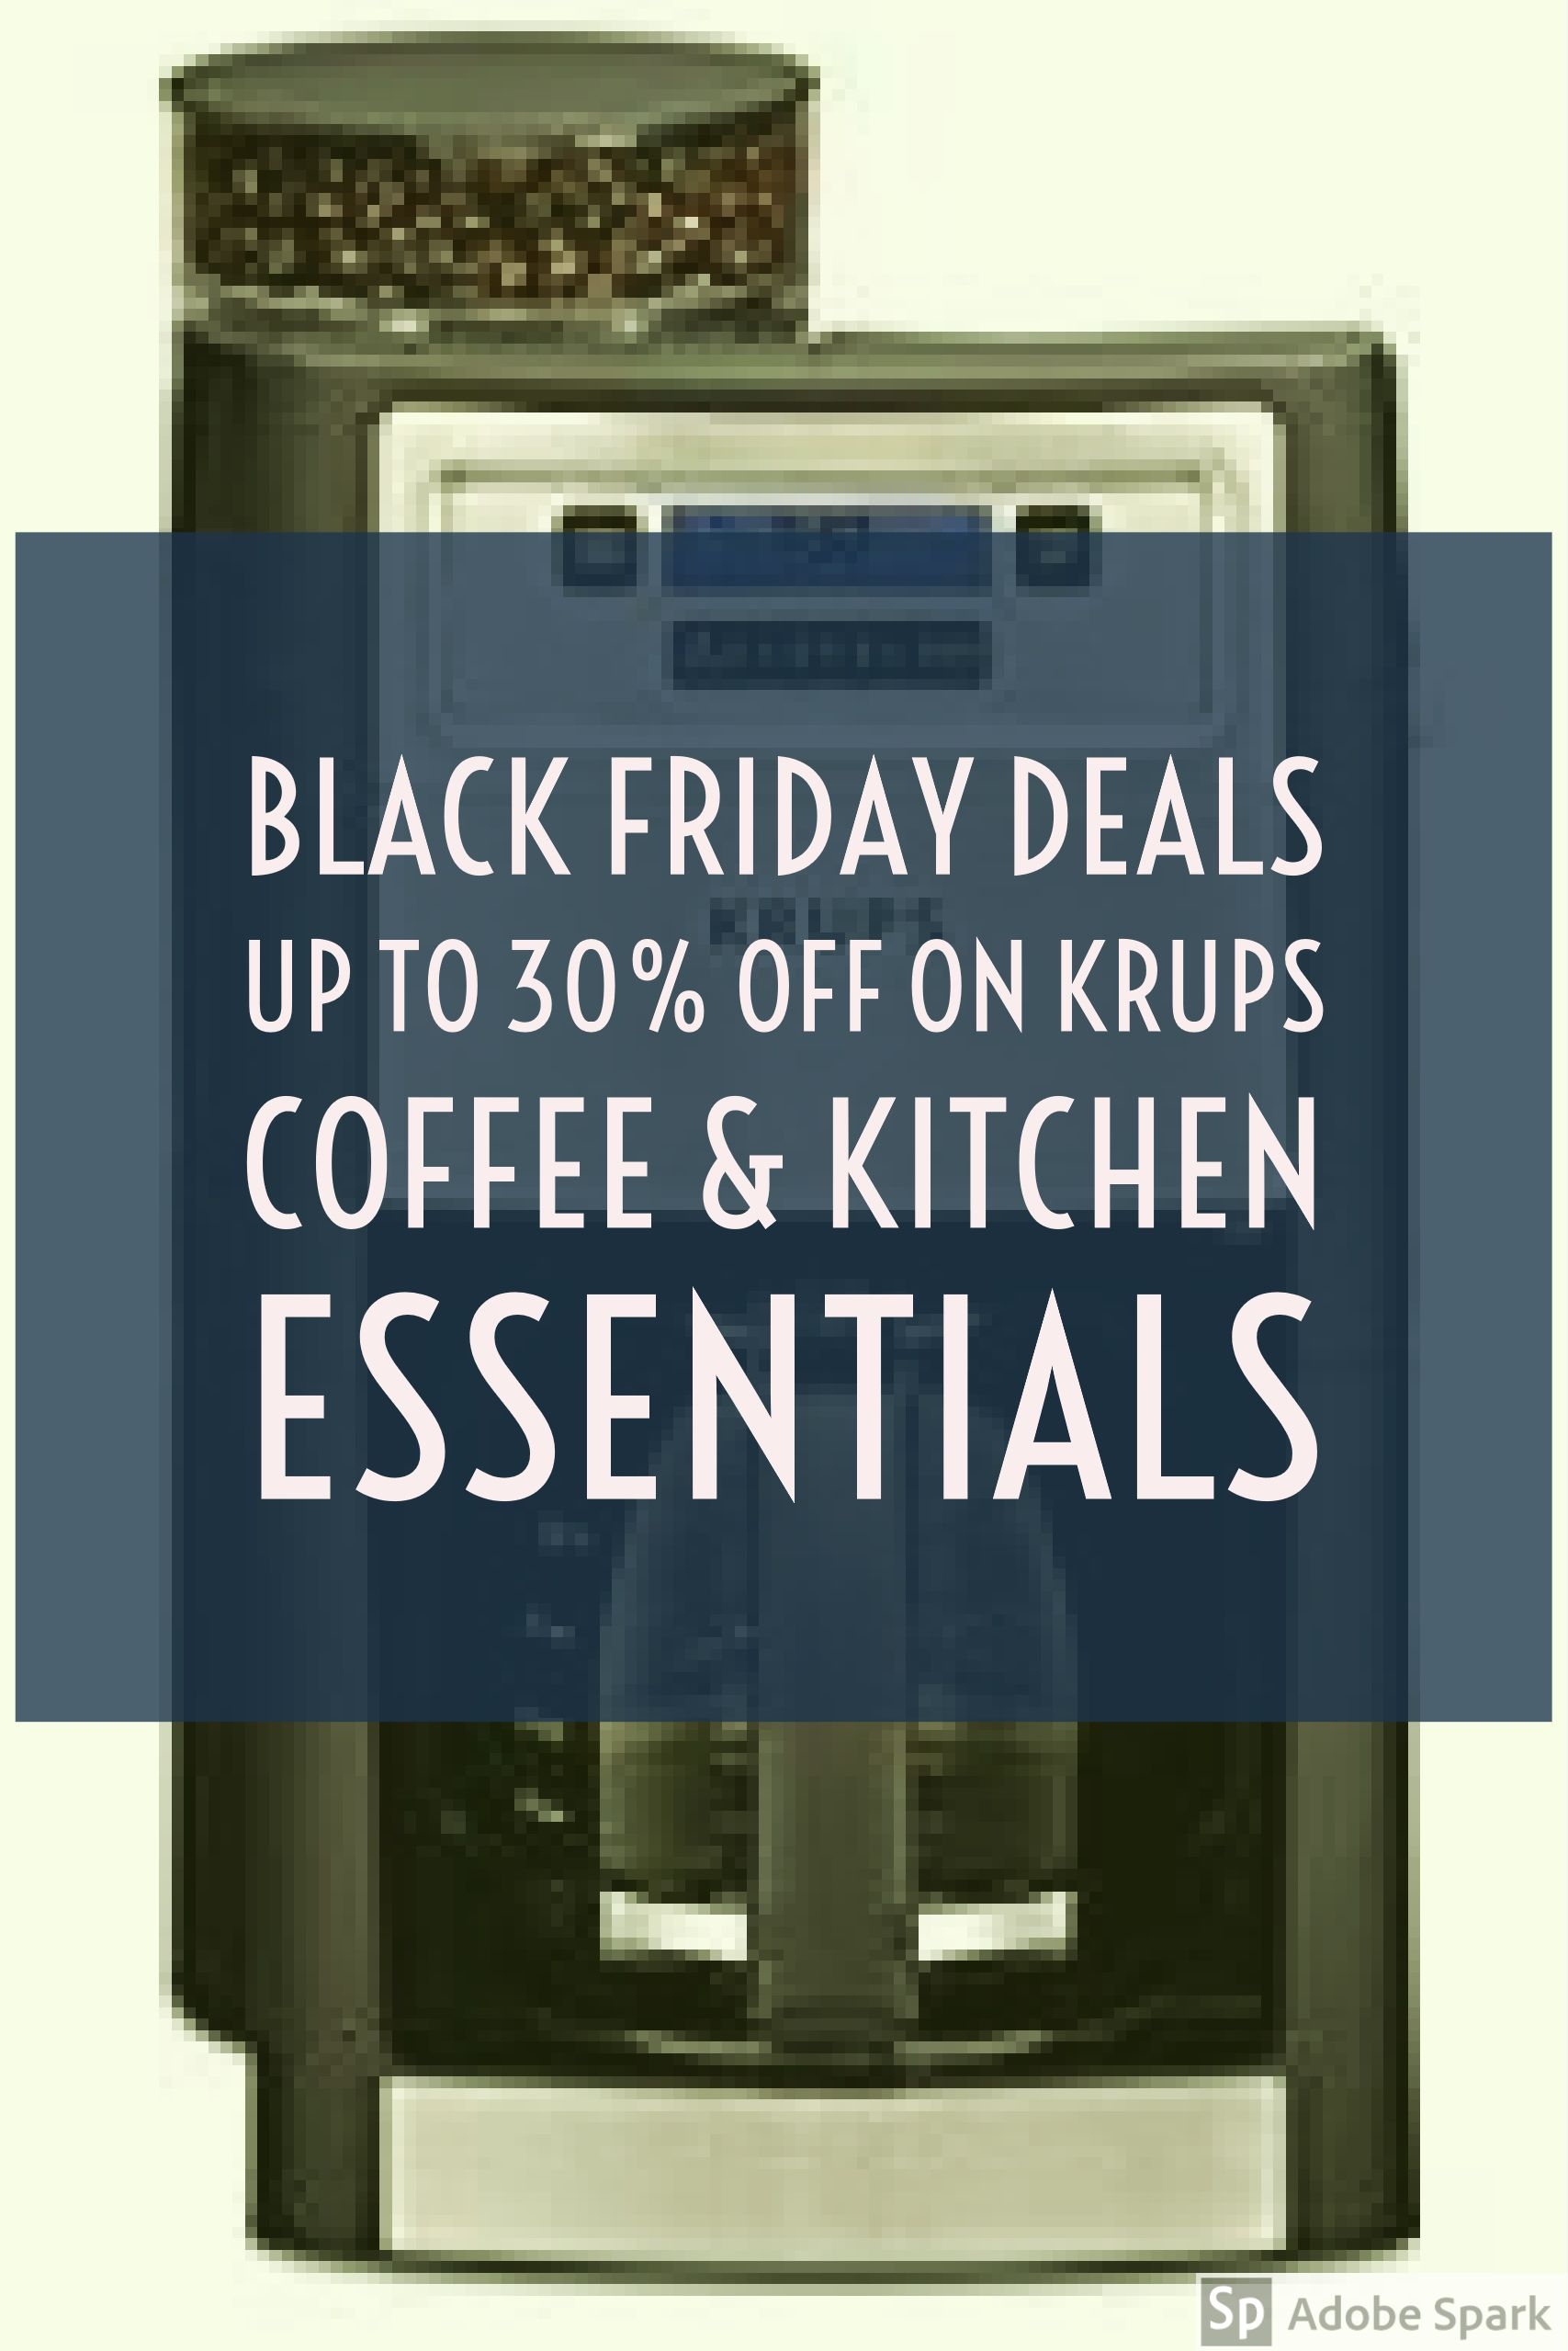 Amazon Kitchen Essentials: Amazon Black Friday Sale! Up To 30% Off On KRUPS Coffee